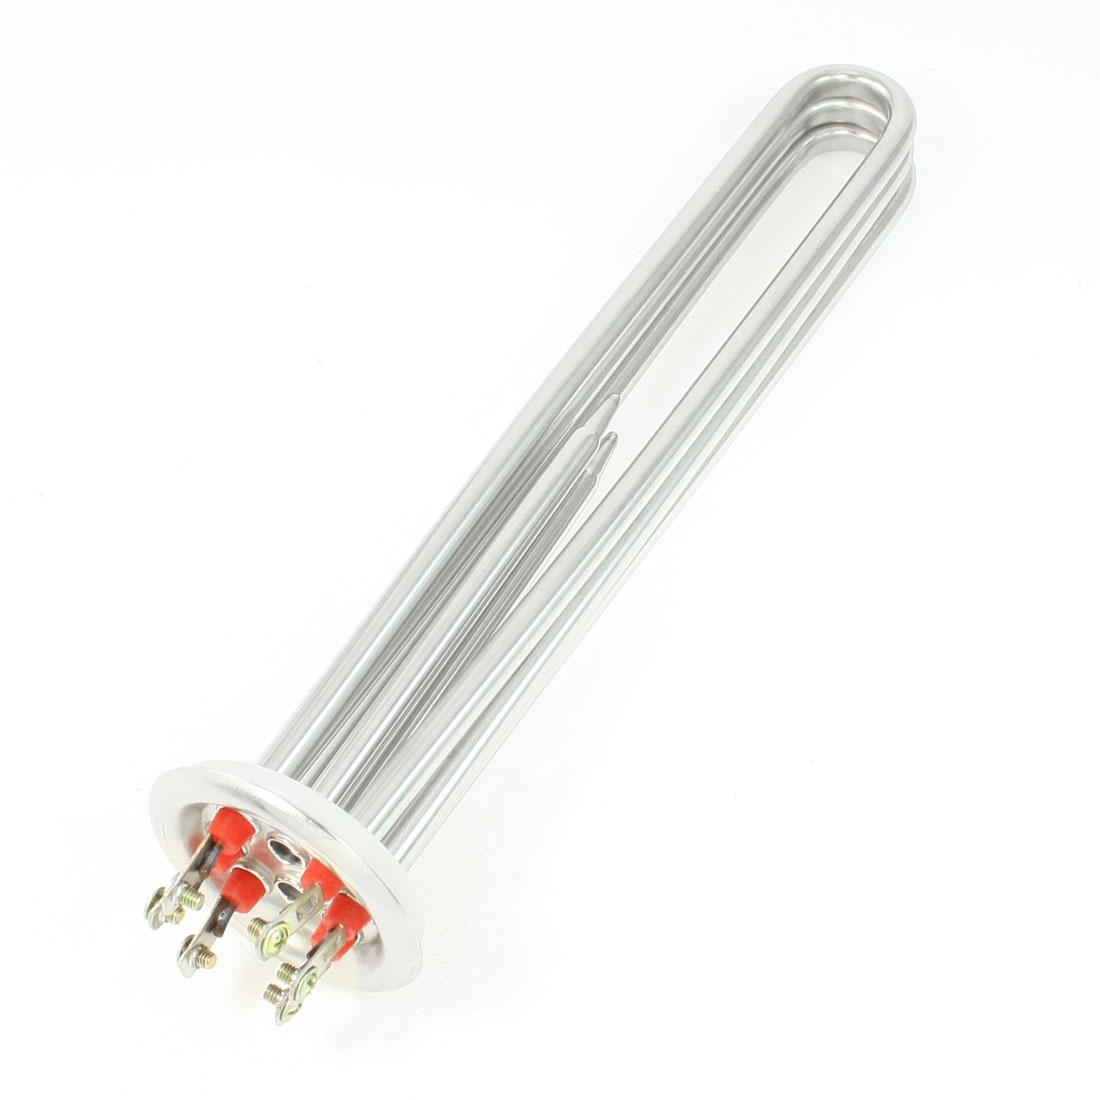 "380V 6KW Electric Water Boiler Heating Element 11.5"" Length"